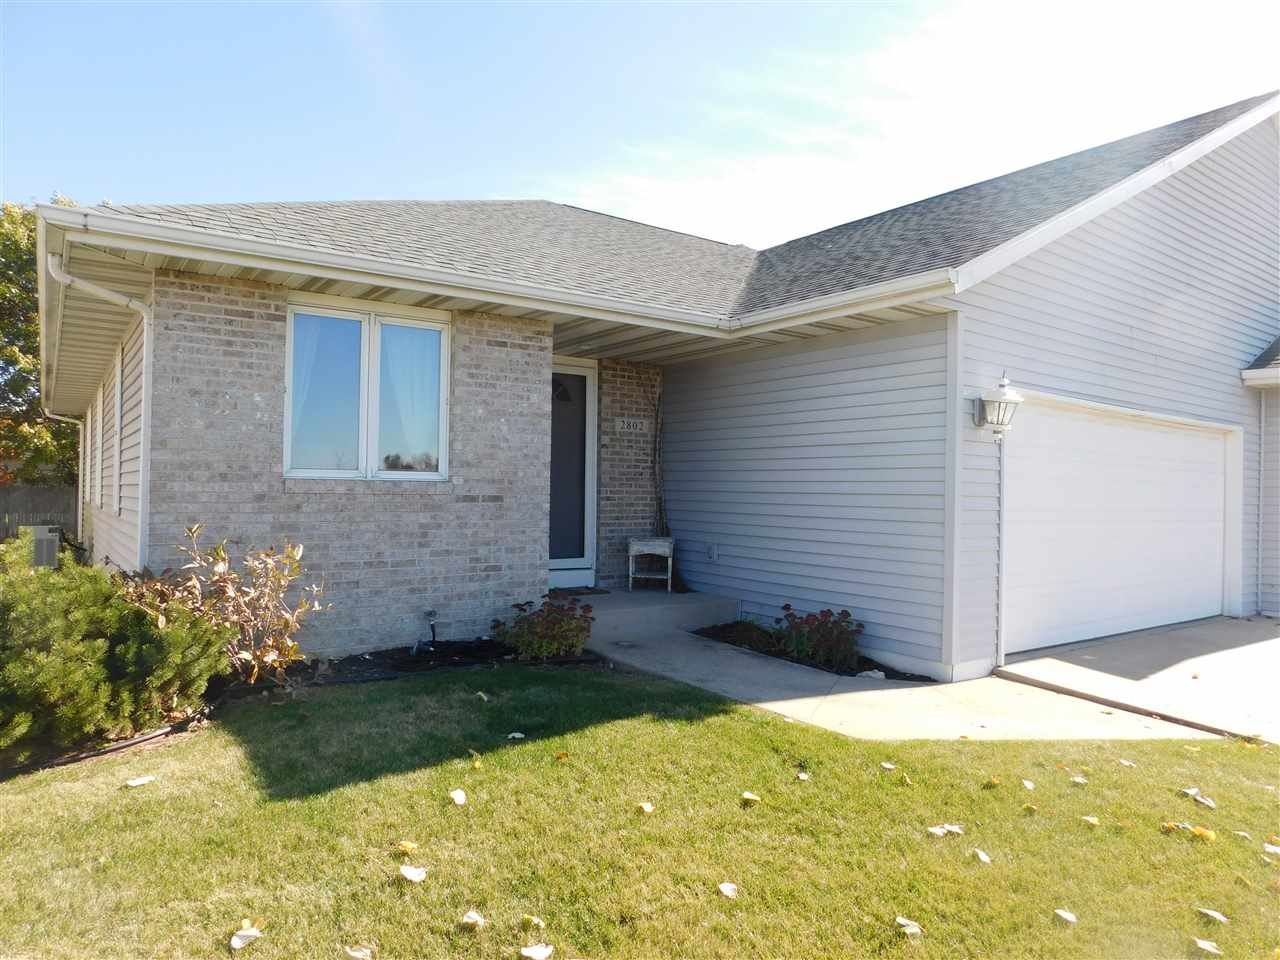 2802 N Wright Rd #2, Janesville, WI 53546 - #: 1897020